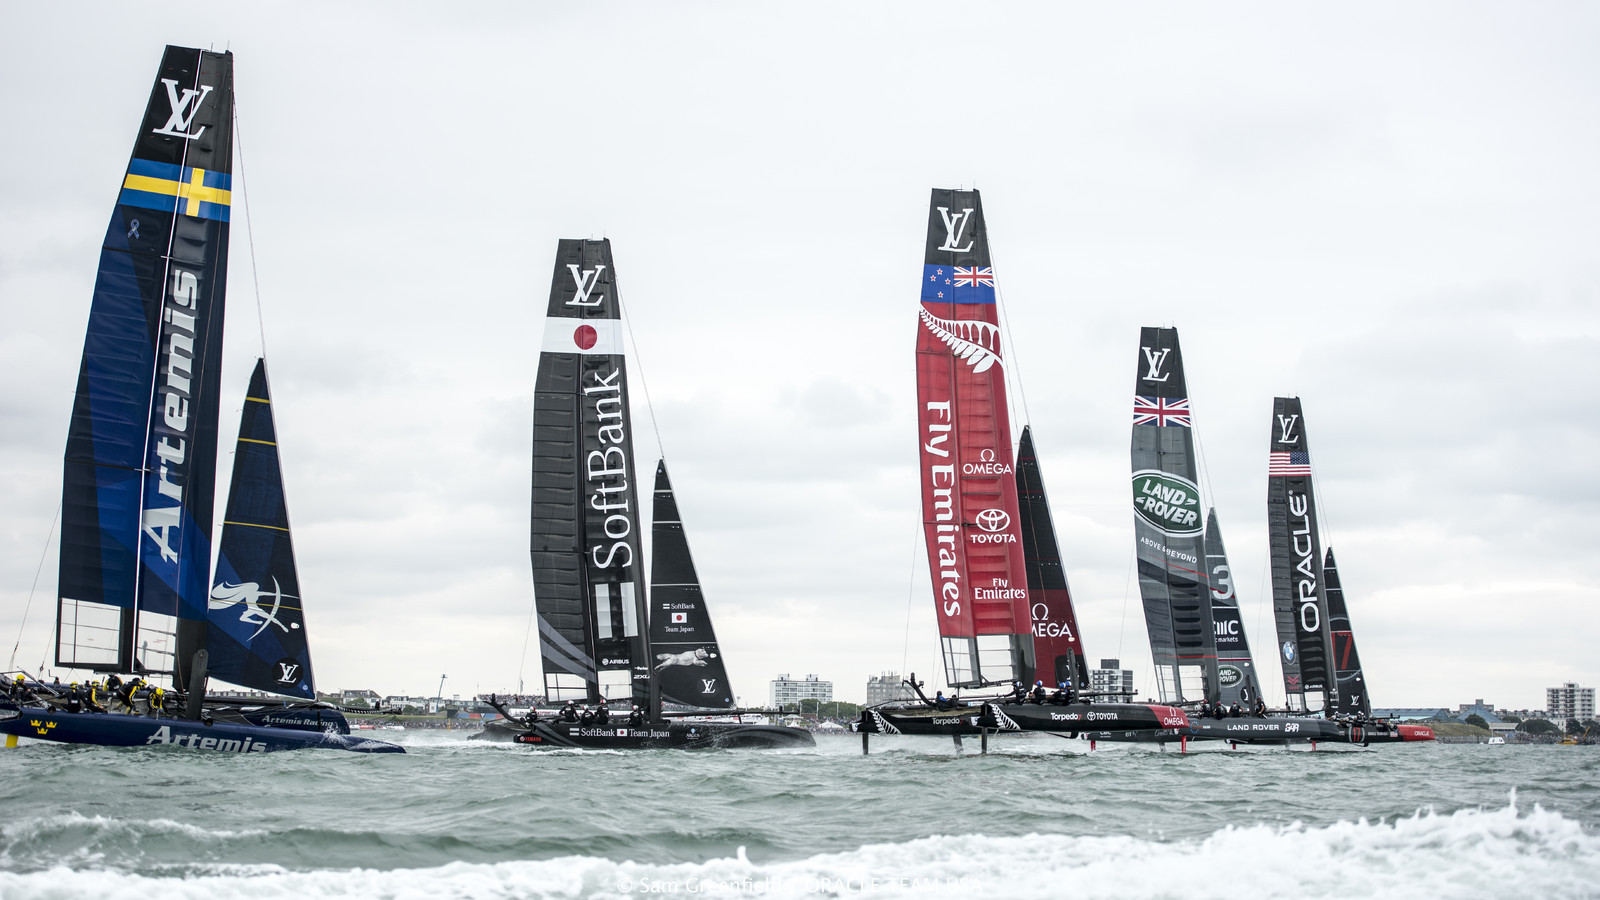 Super Sunday Race Day at Louis Vuitton America's Cup World Series Chicago